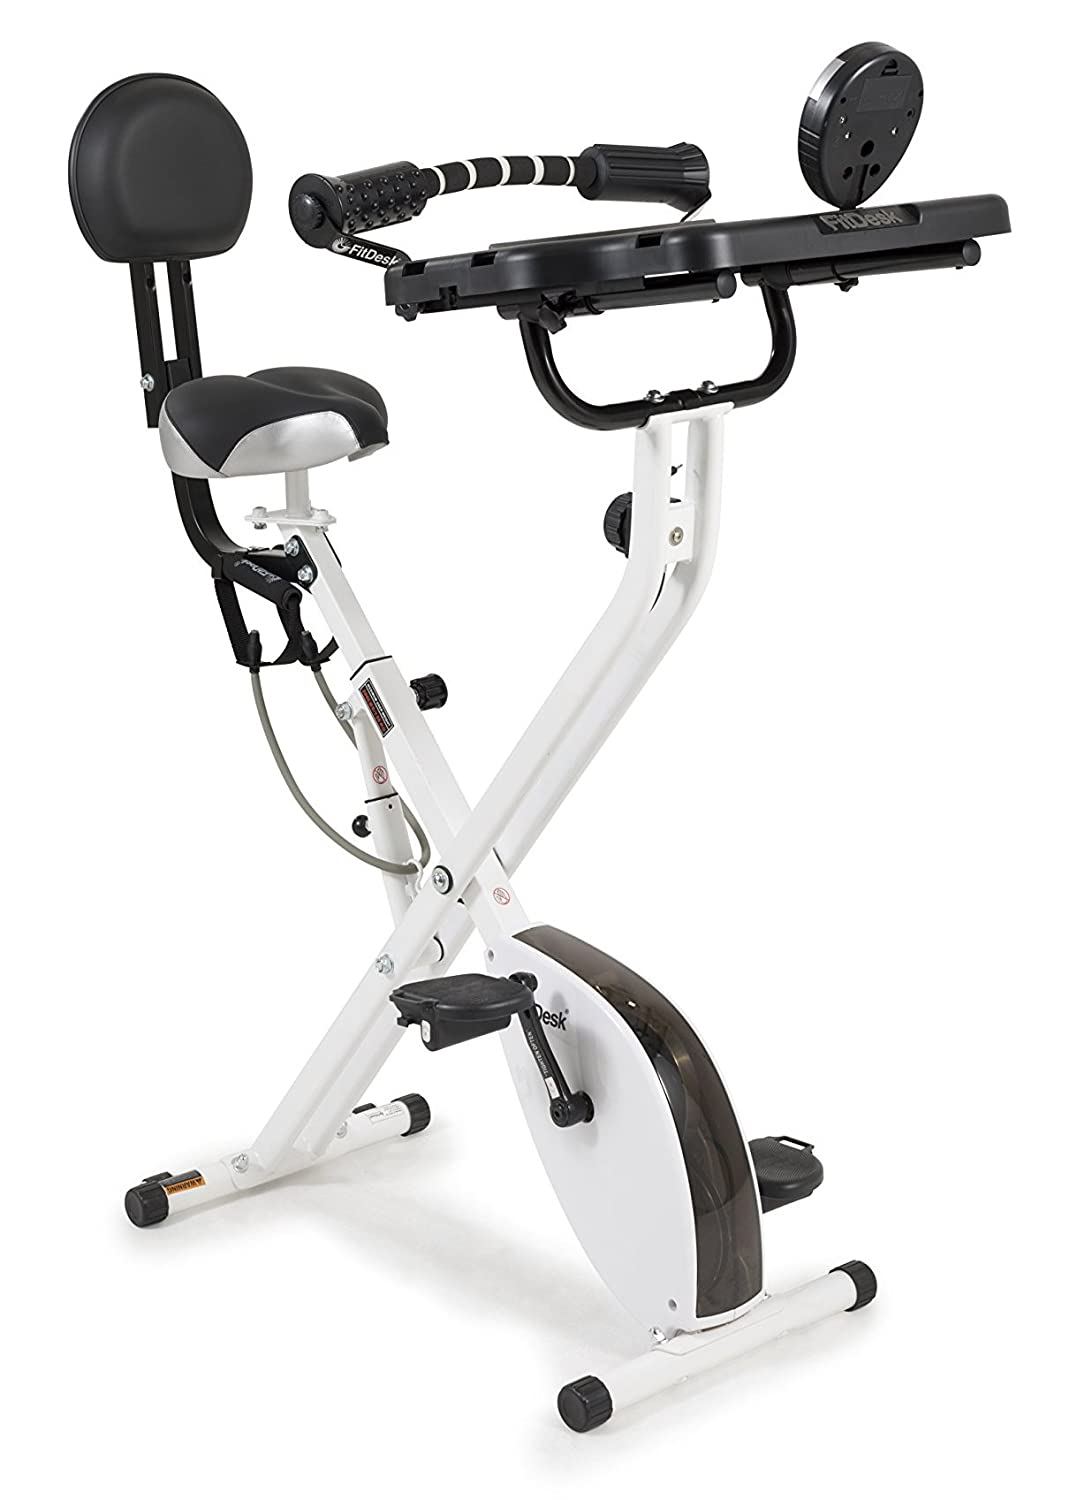 FitDesk Desk Bike Black Friday Deal 2020